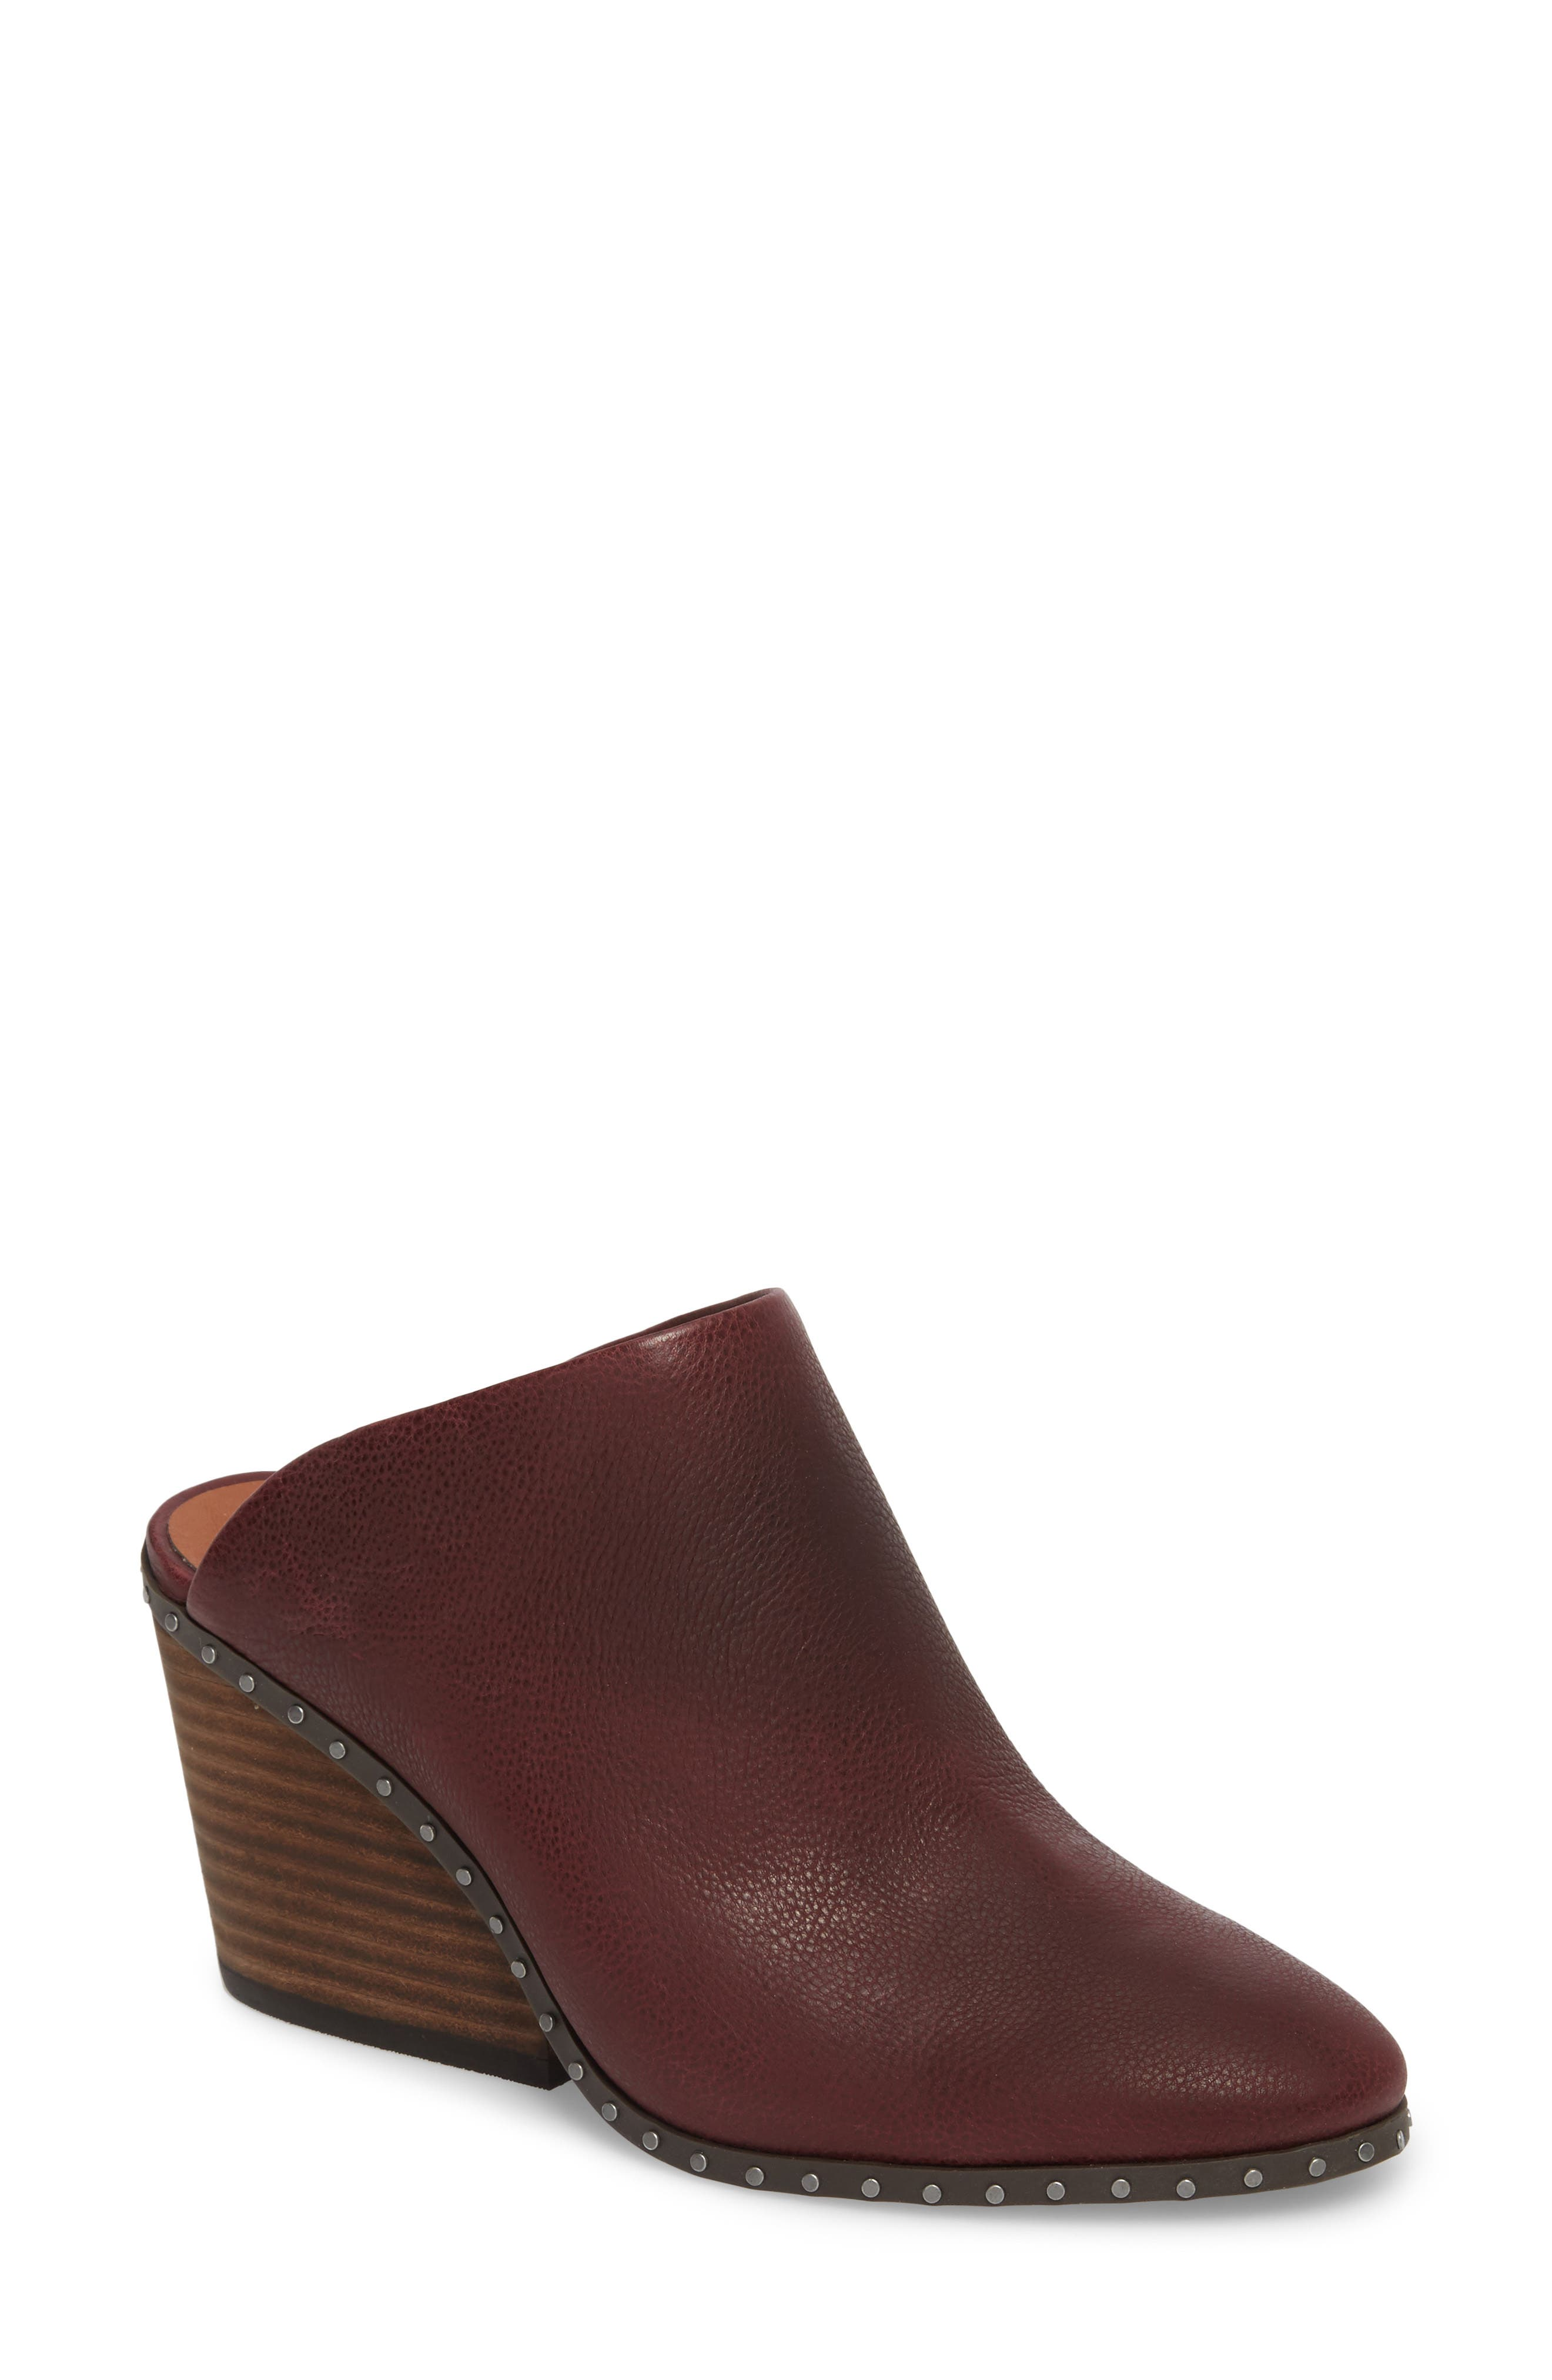 Larsson2 Studded Mule,                             Main thumbnail 1, color,                             Tawny Port Leather